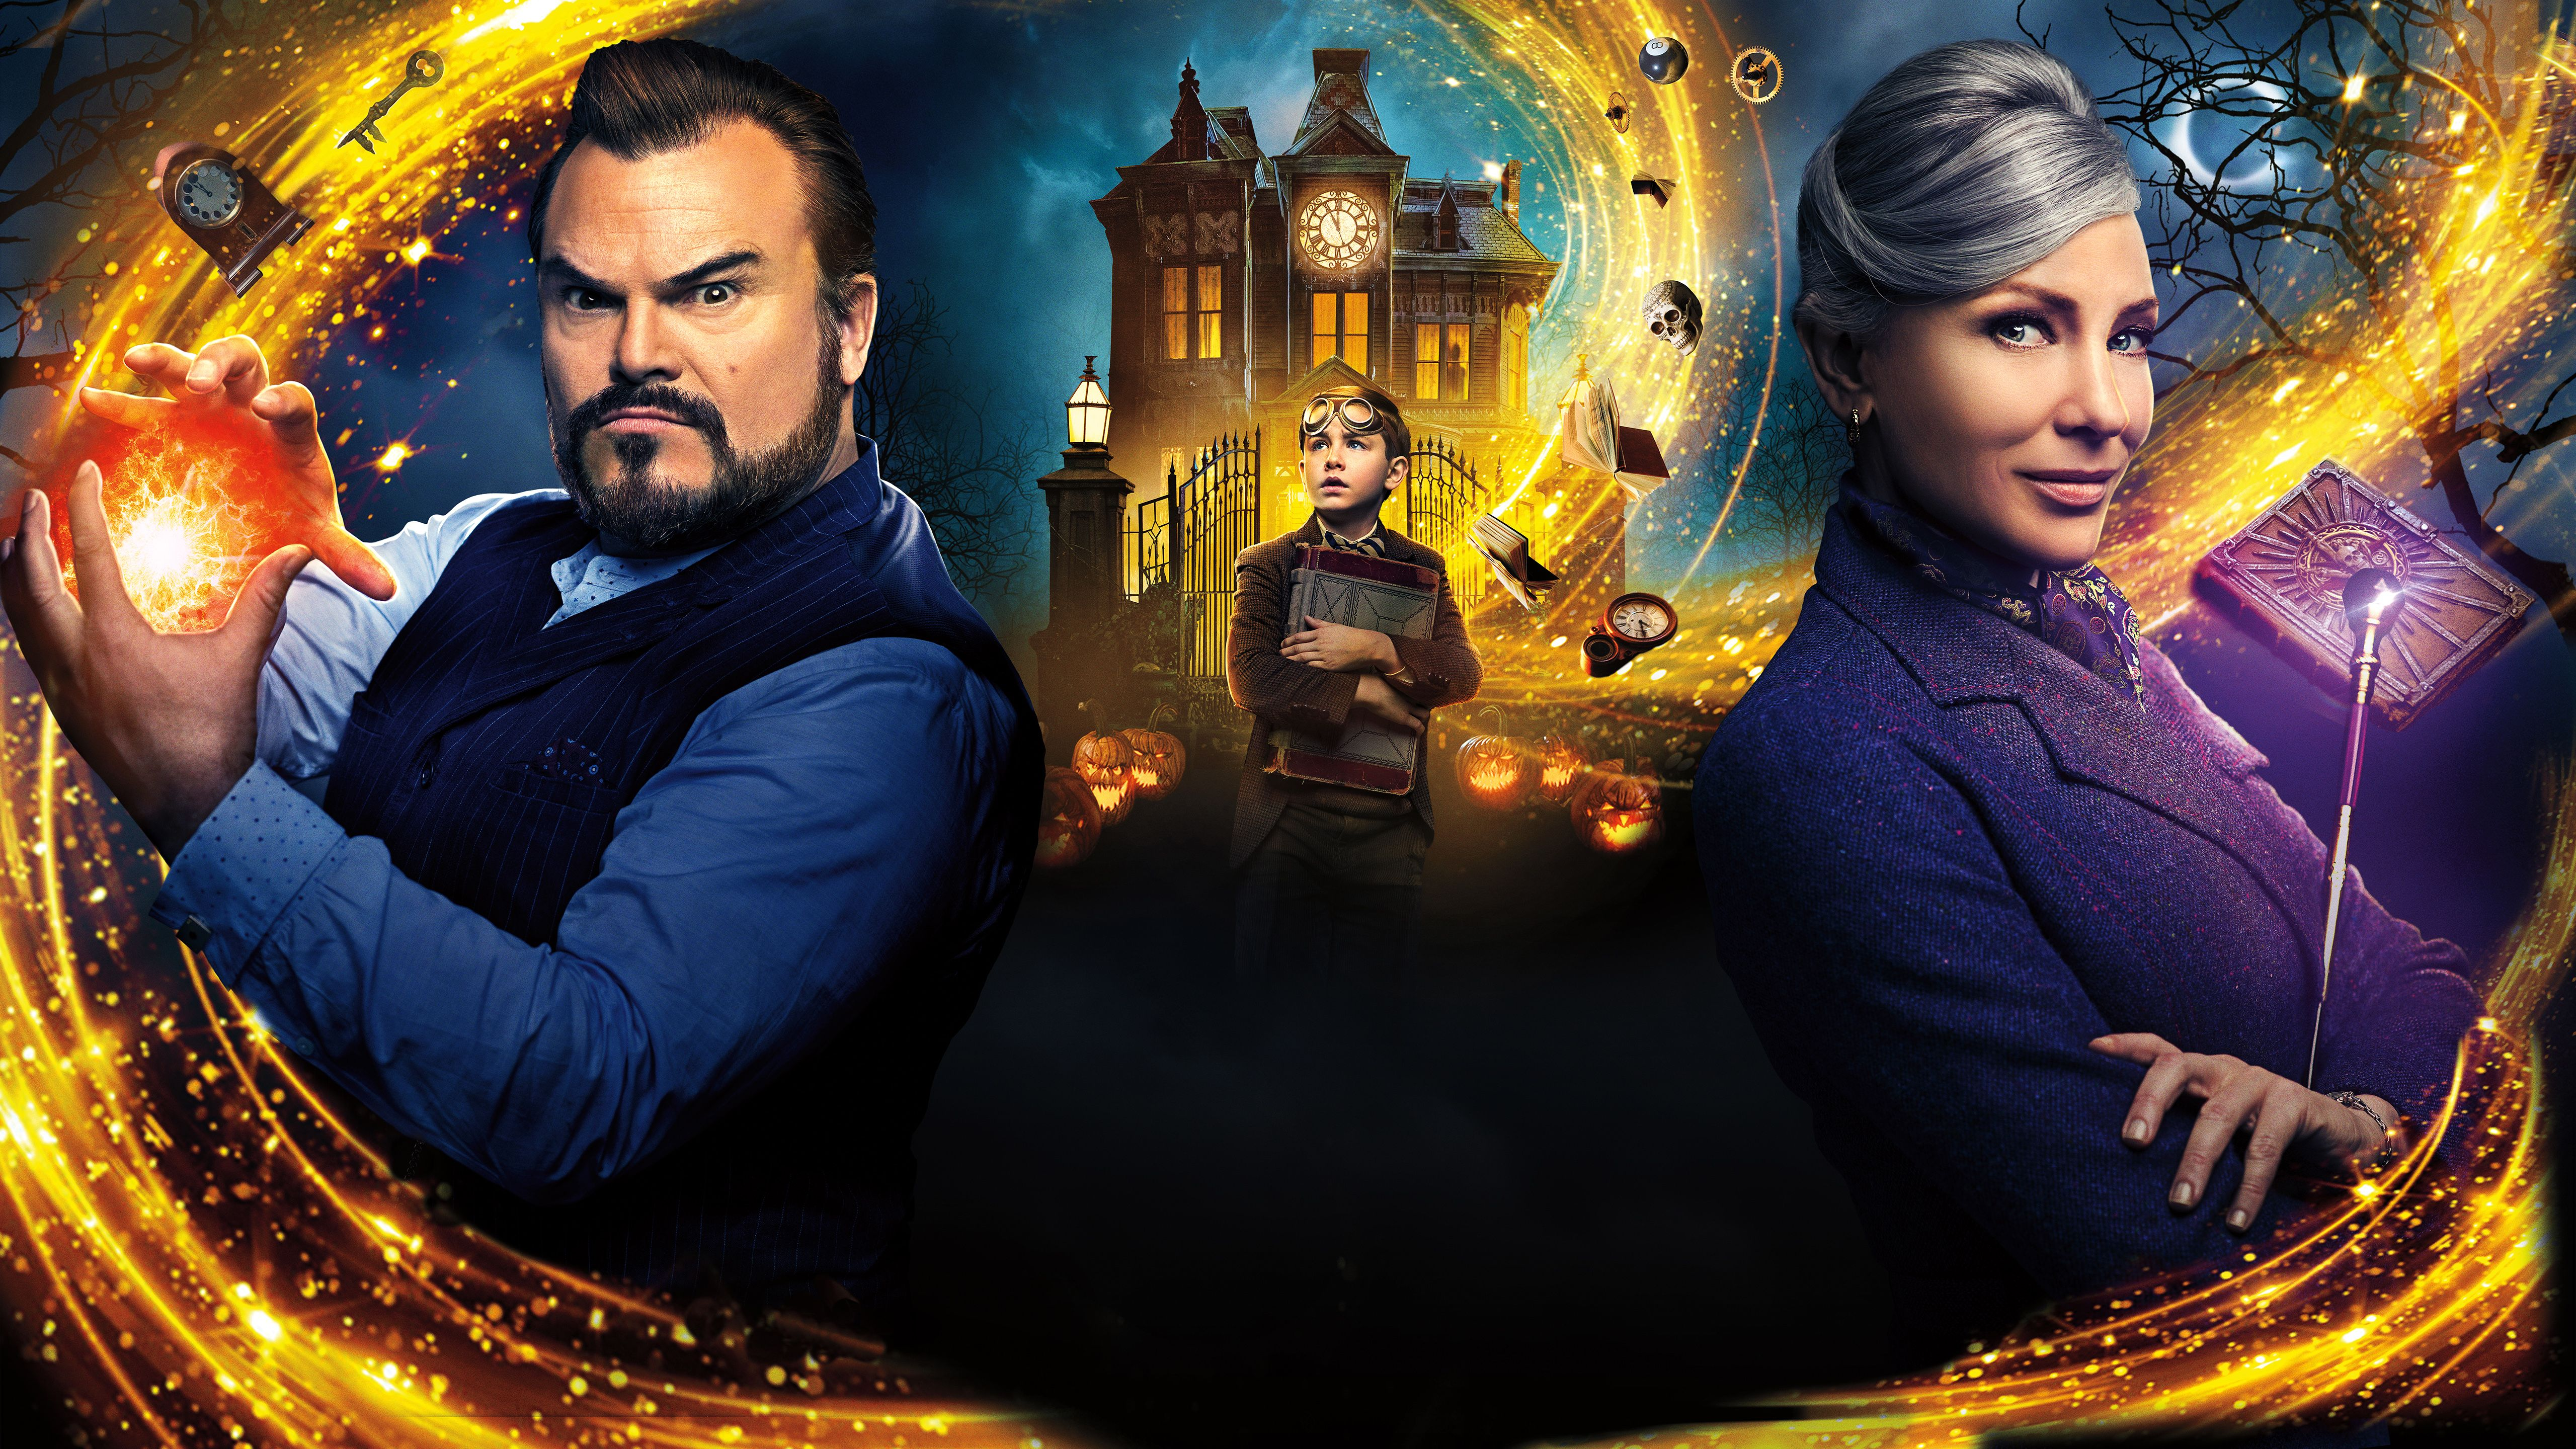 The House With A Clock In Its Walls 2018 Movie 5k Hd 2018 Movies Full Movies Amblin Entertainment